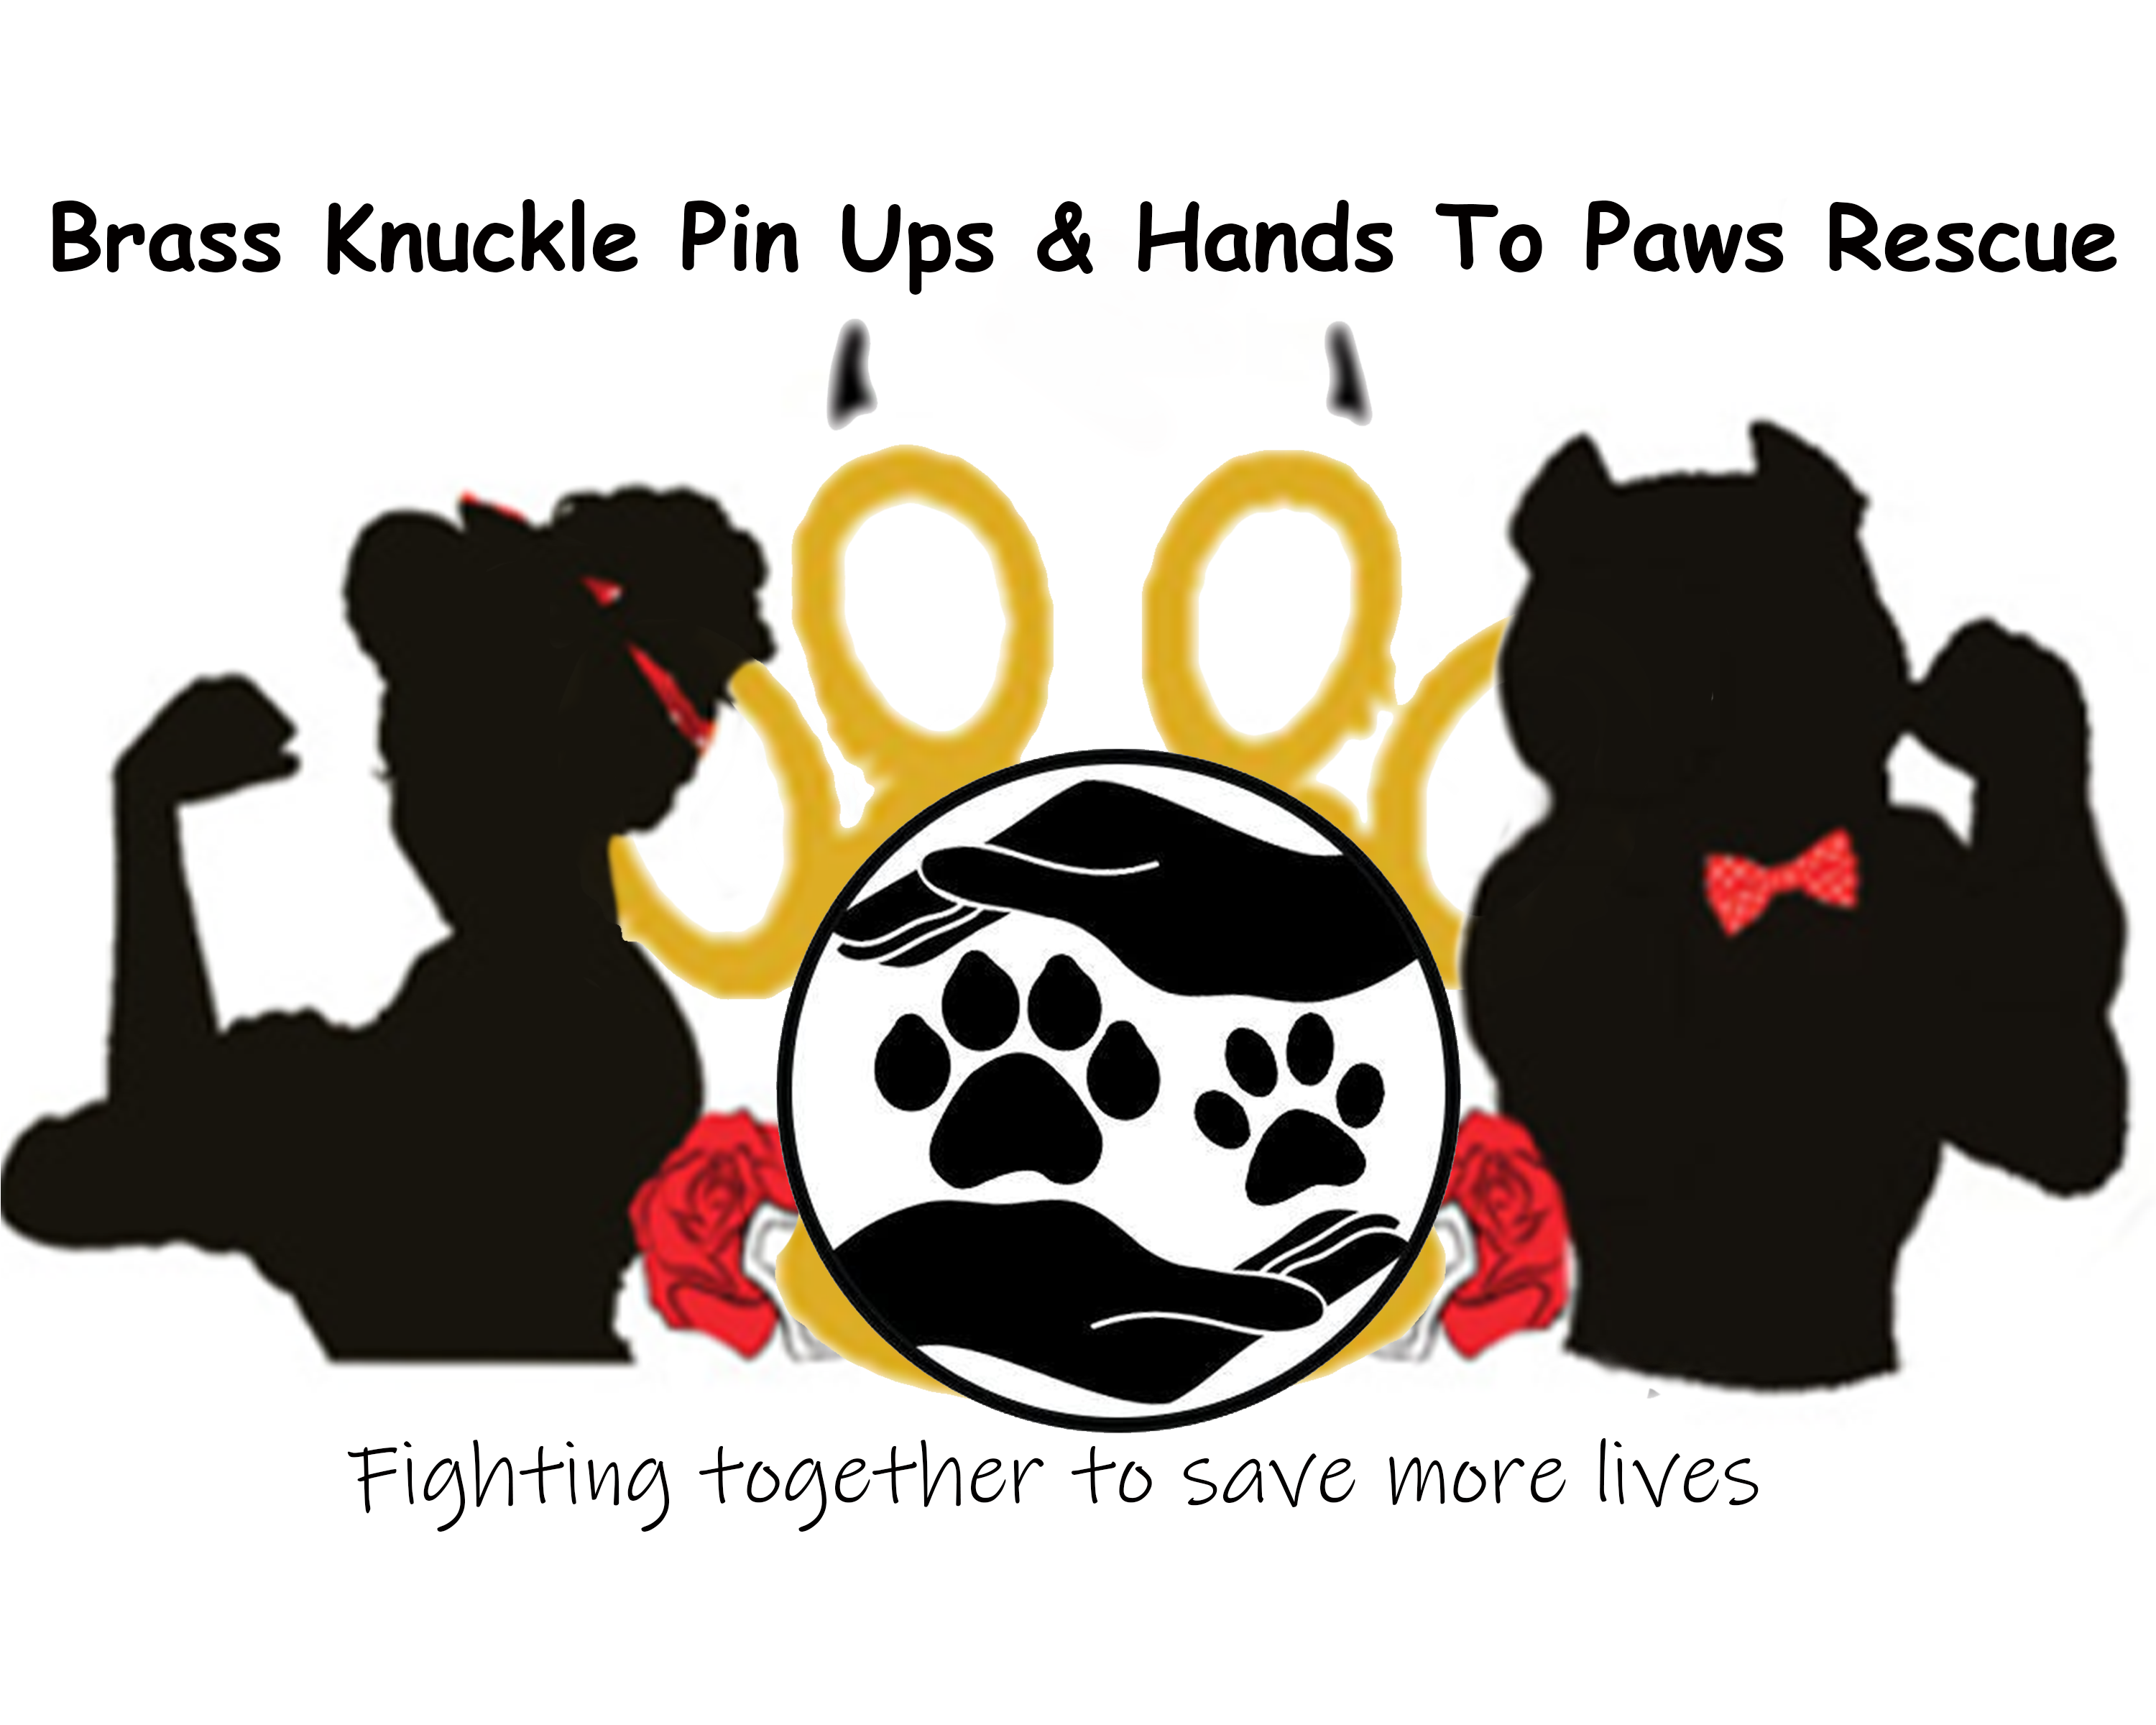 Brass Knuckle Pin Ups Rescue & Hands To Paws Rescue